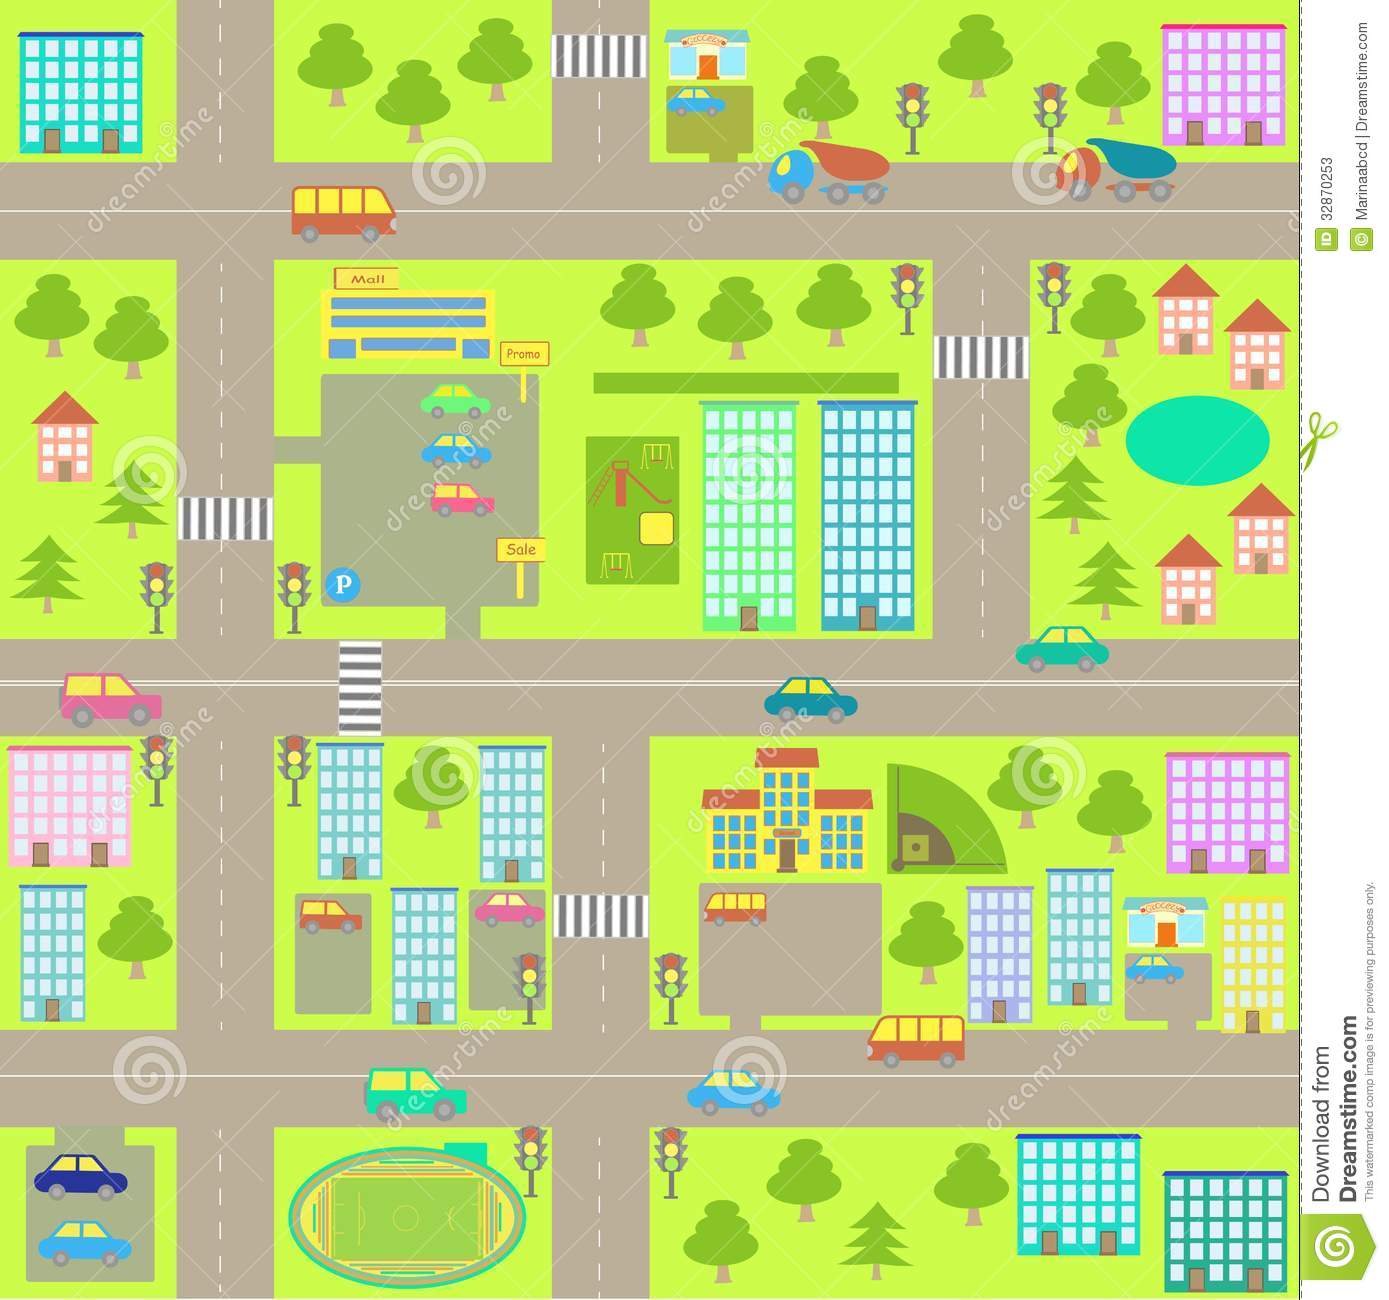 Cartoon Seamless City Map Stock Vector Illustration Of